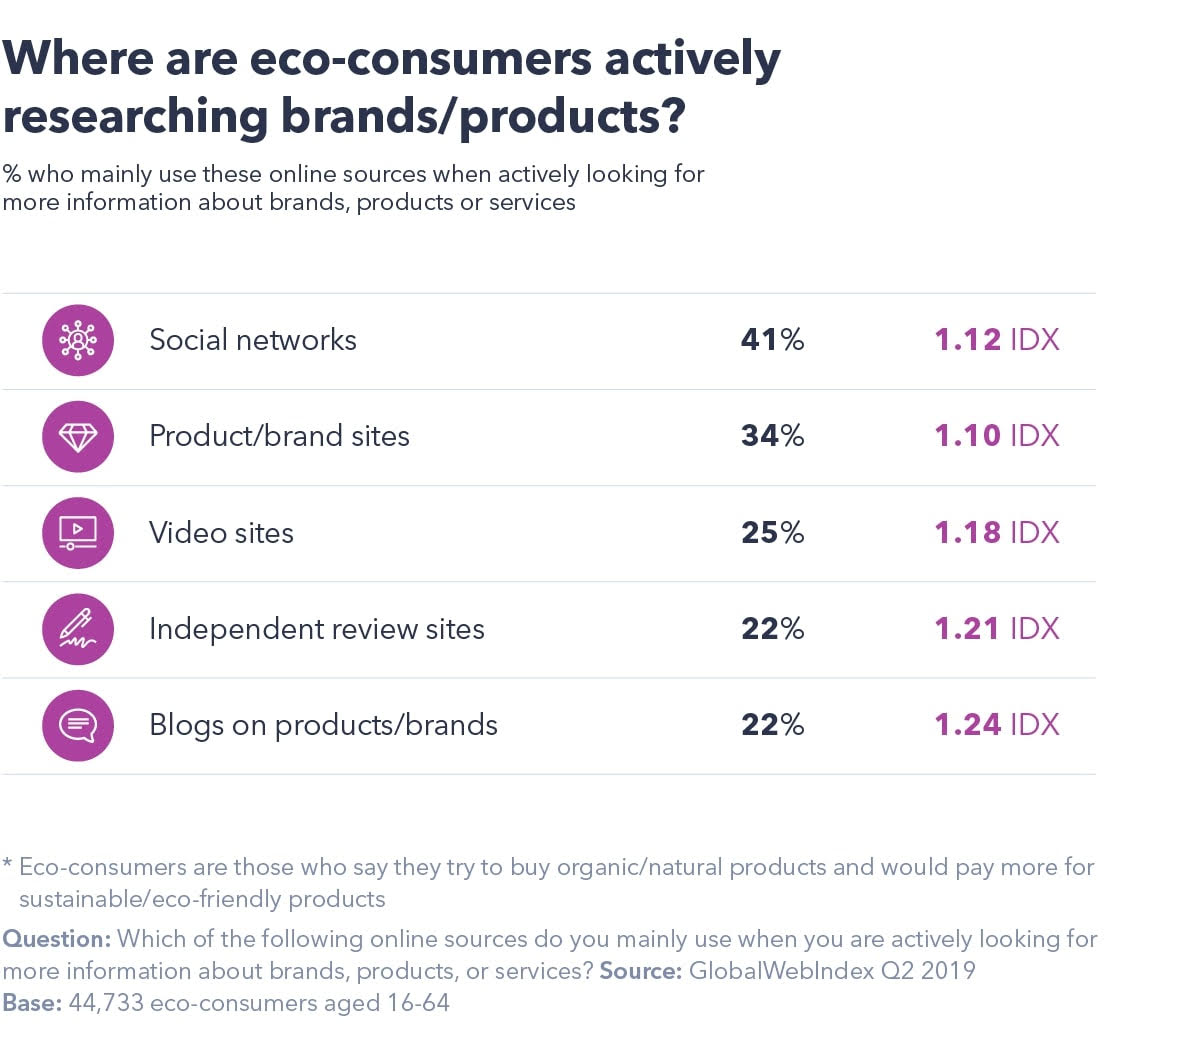 where are eco consumers researching products?